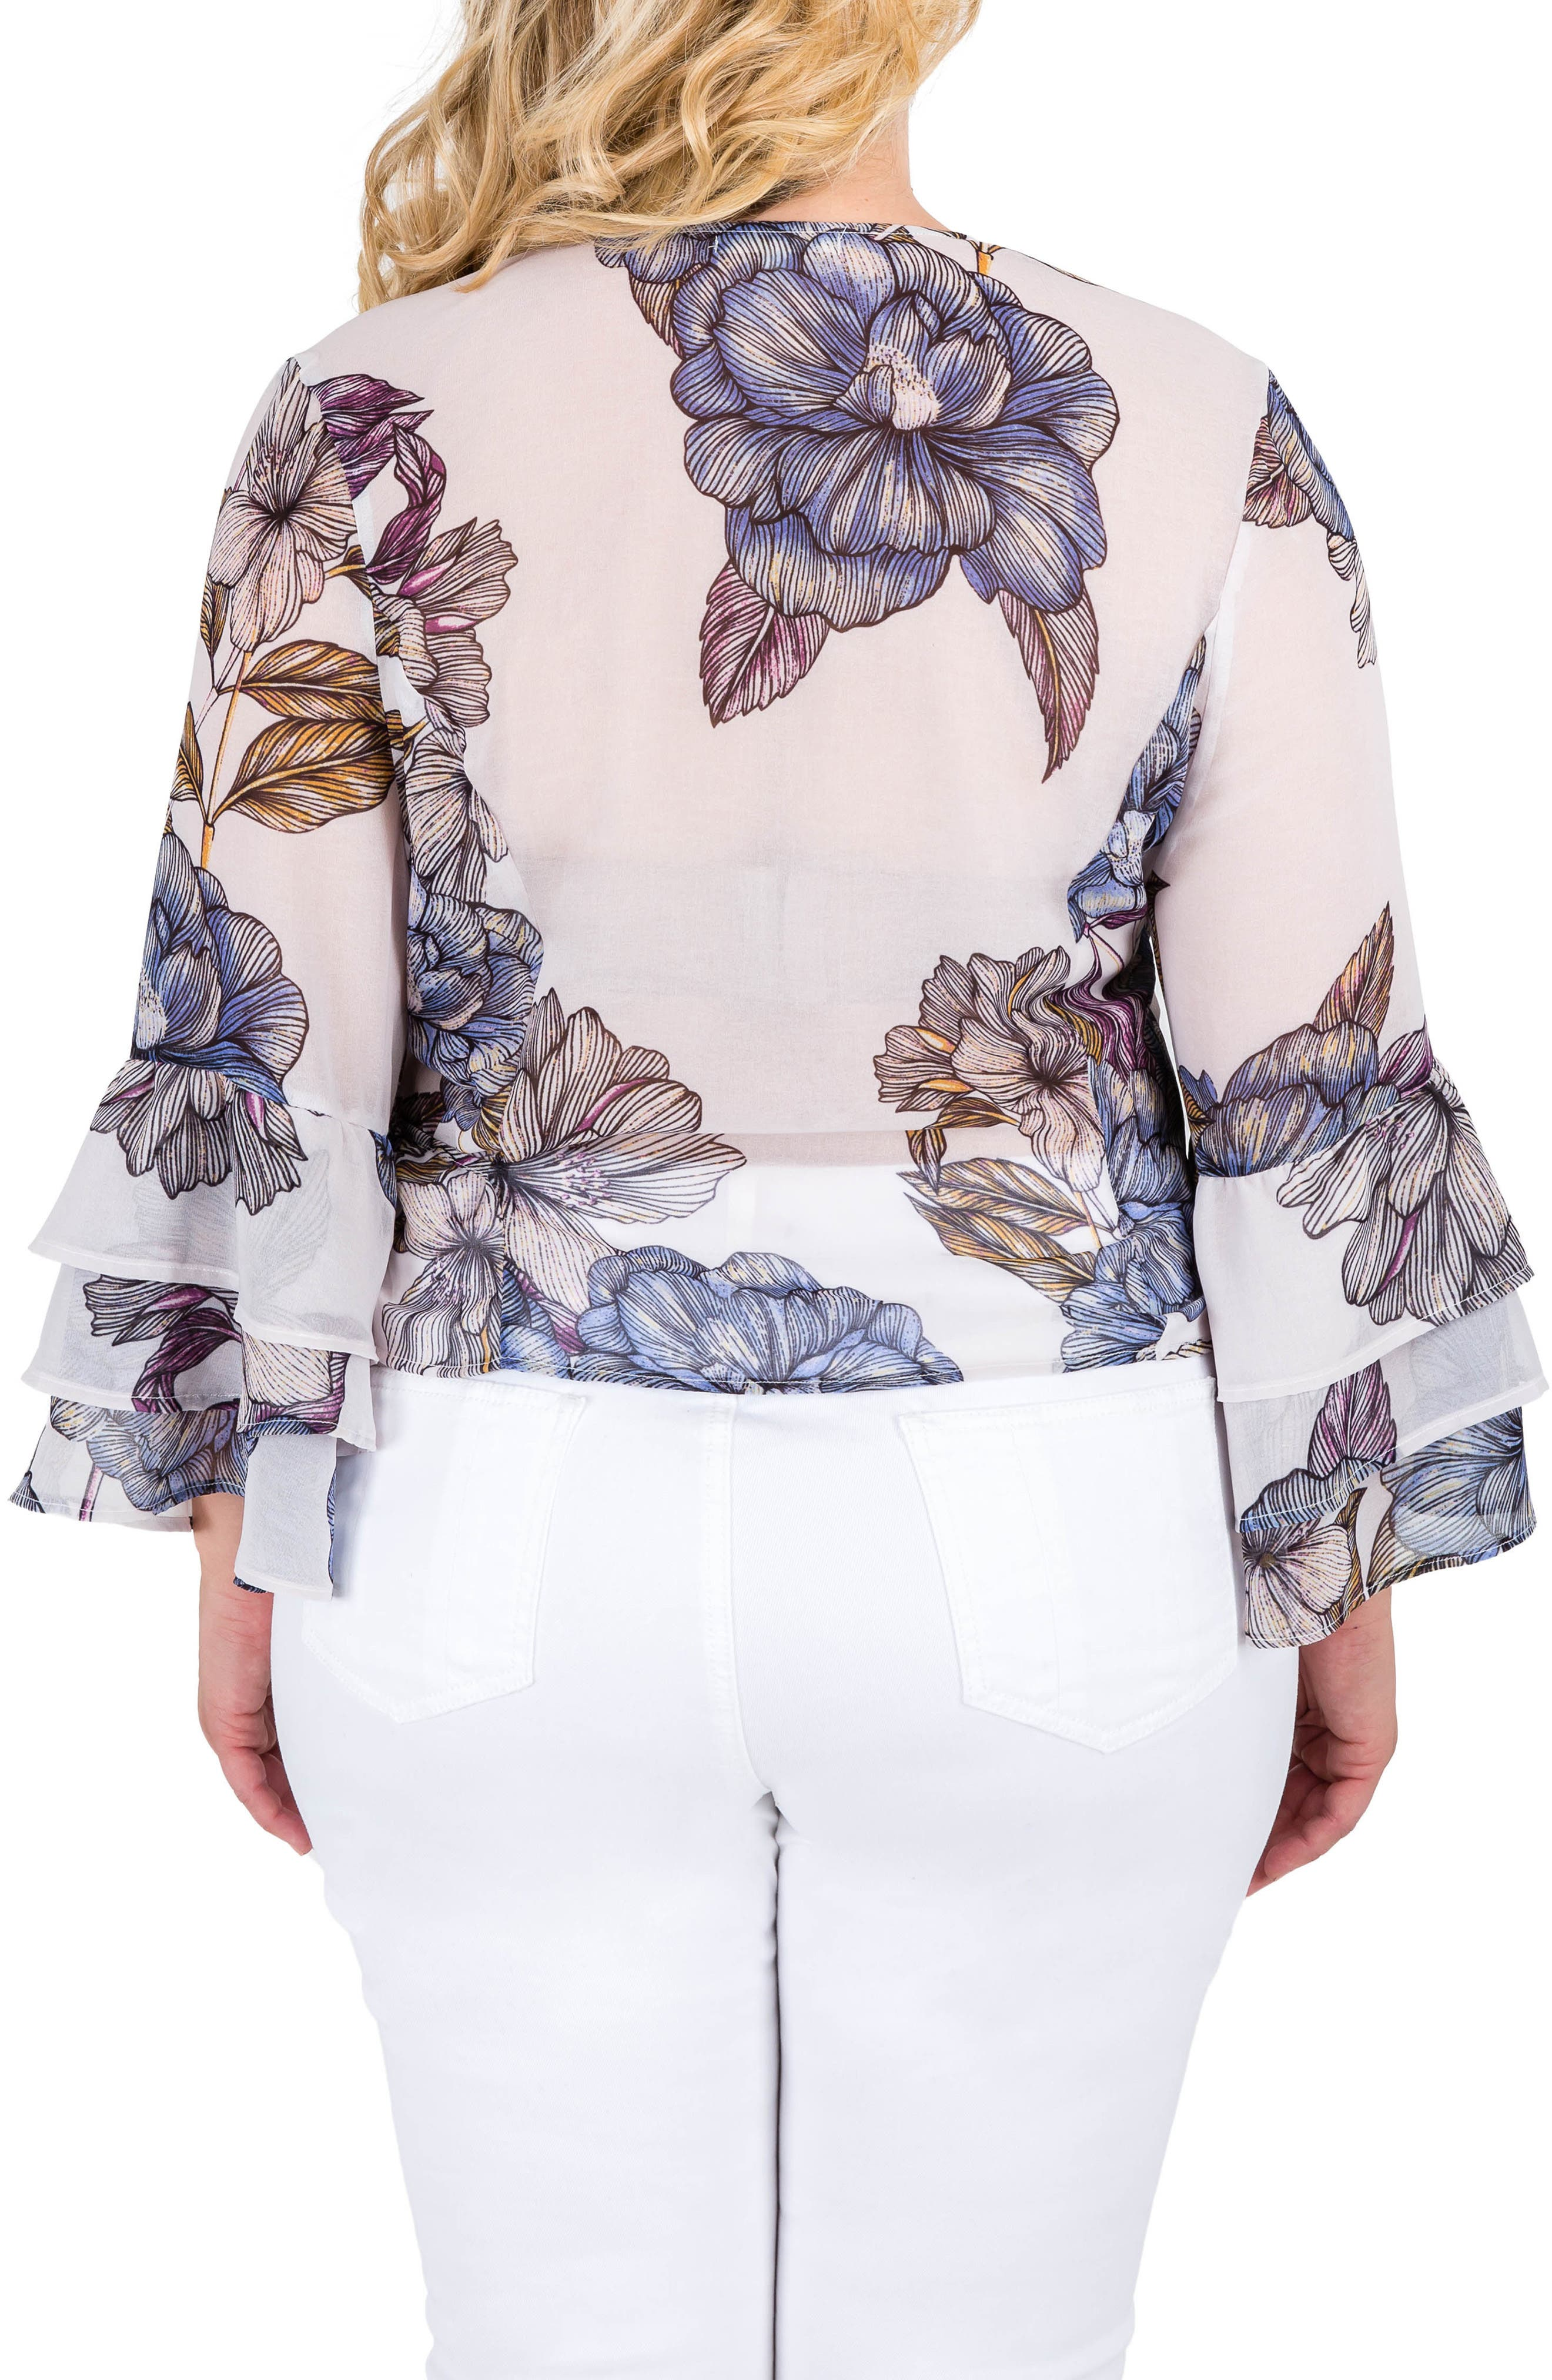 Miley Bell Sleeve Floral Wrap Top,                             Alternate thumbnail 2, color,                             027